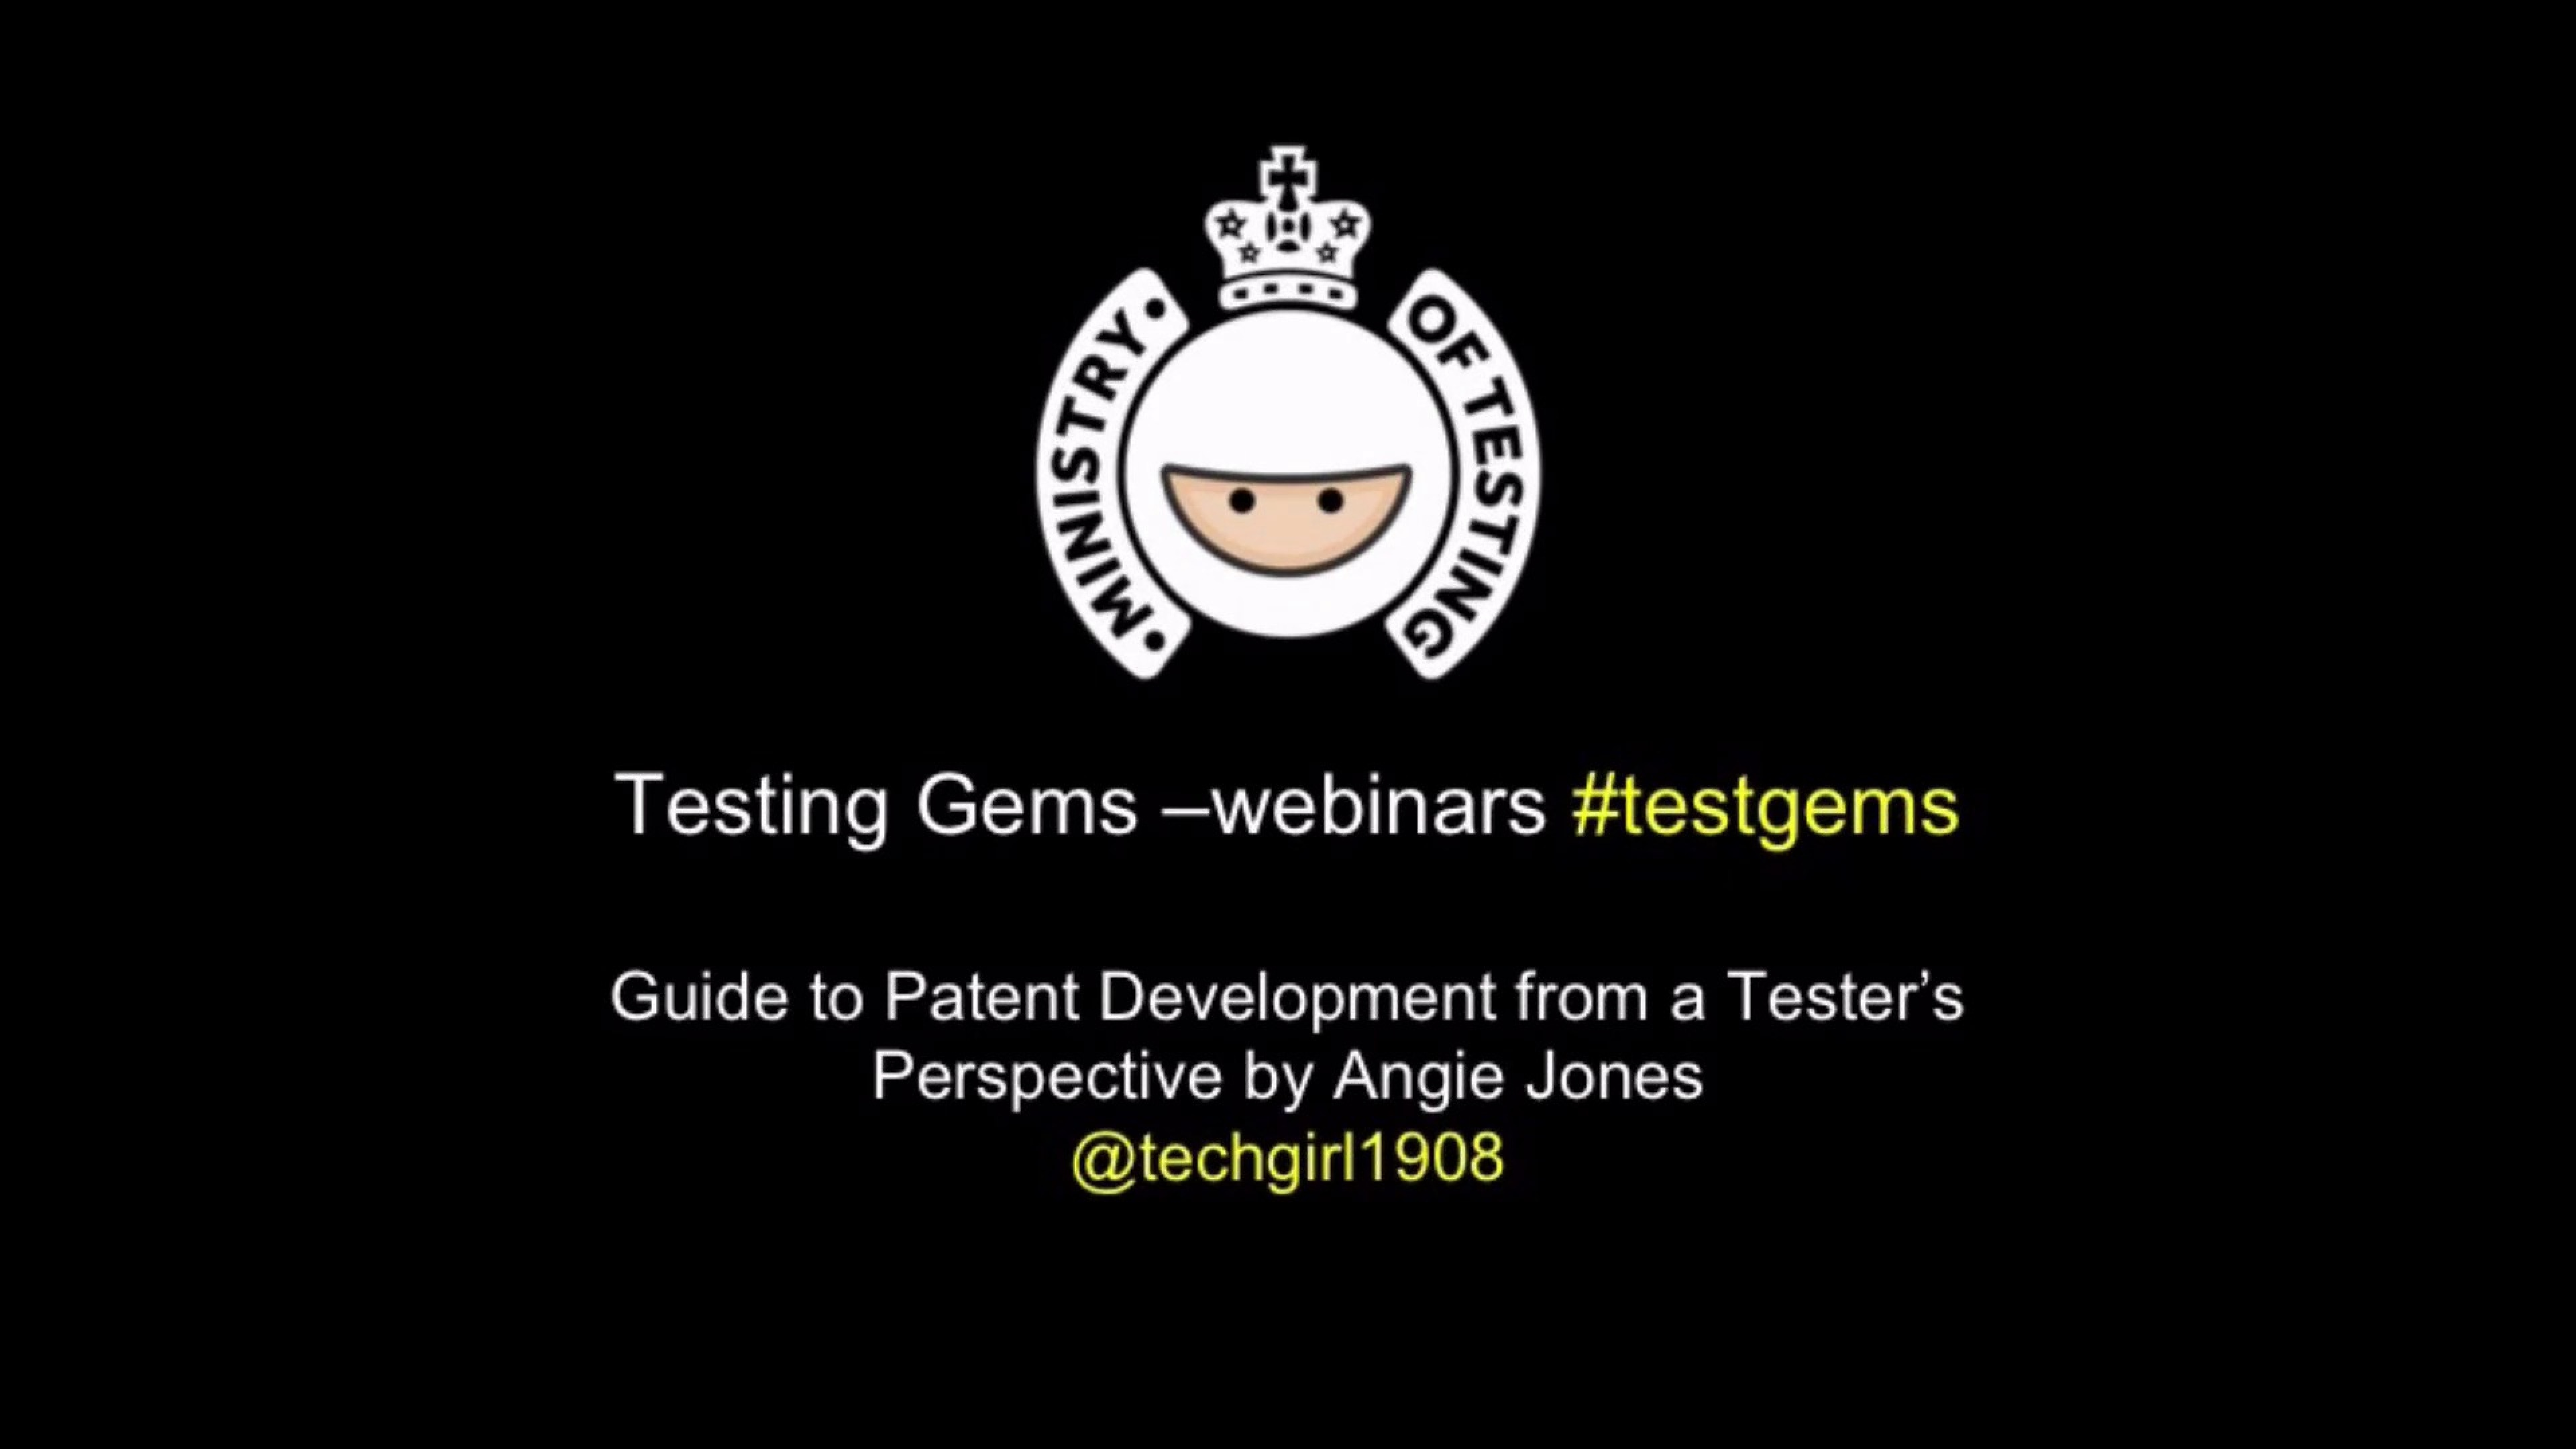 A Guide to Patent Development from a Tester's Perspective with Angie Jones